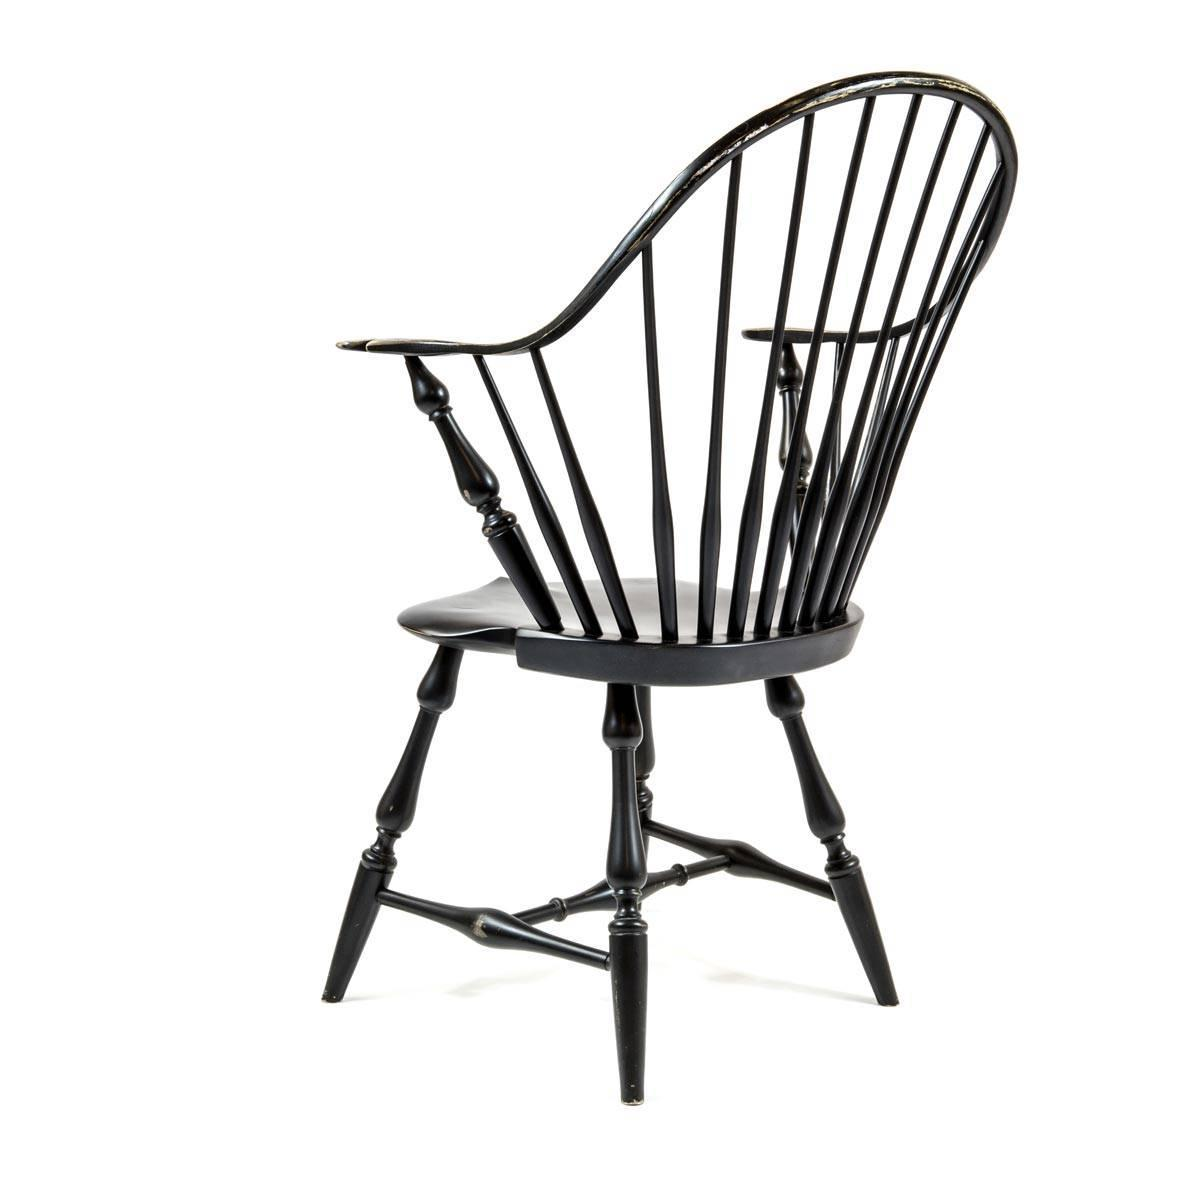 Black Windsor Chair Shimna Windsor Captains Chair Distressed Black Finish For